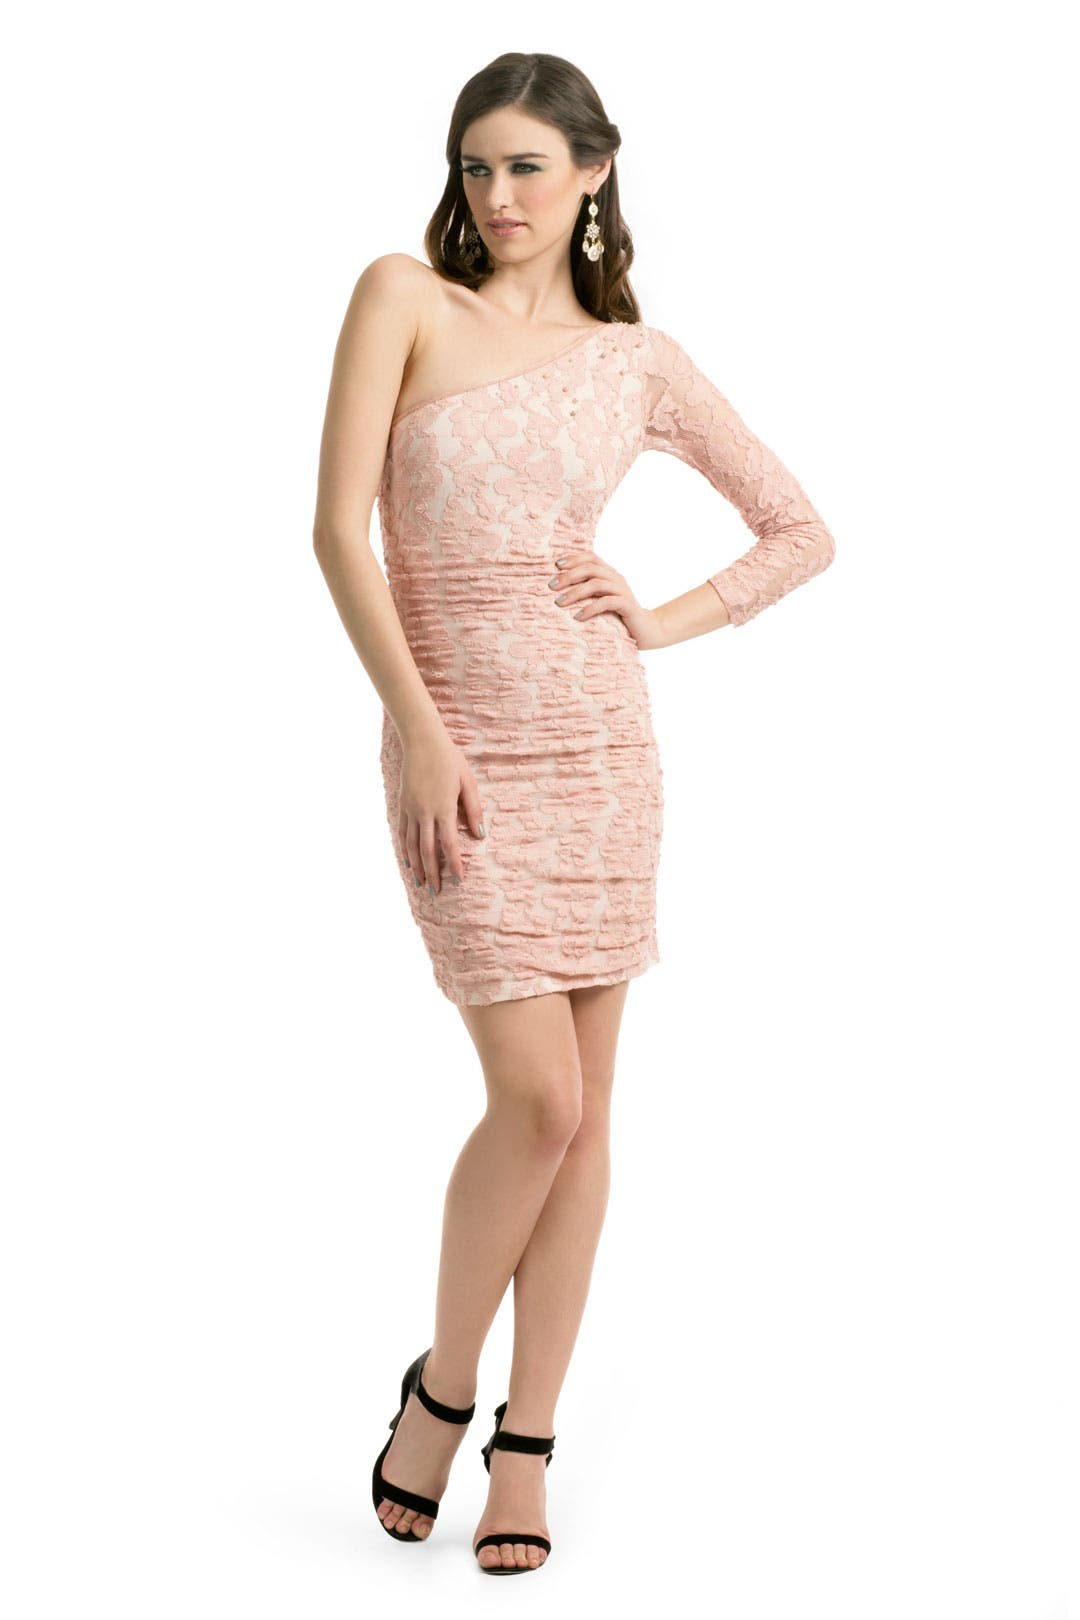 Blushing Ballerina Dress by Pencey